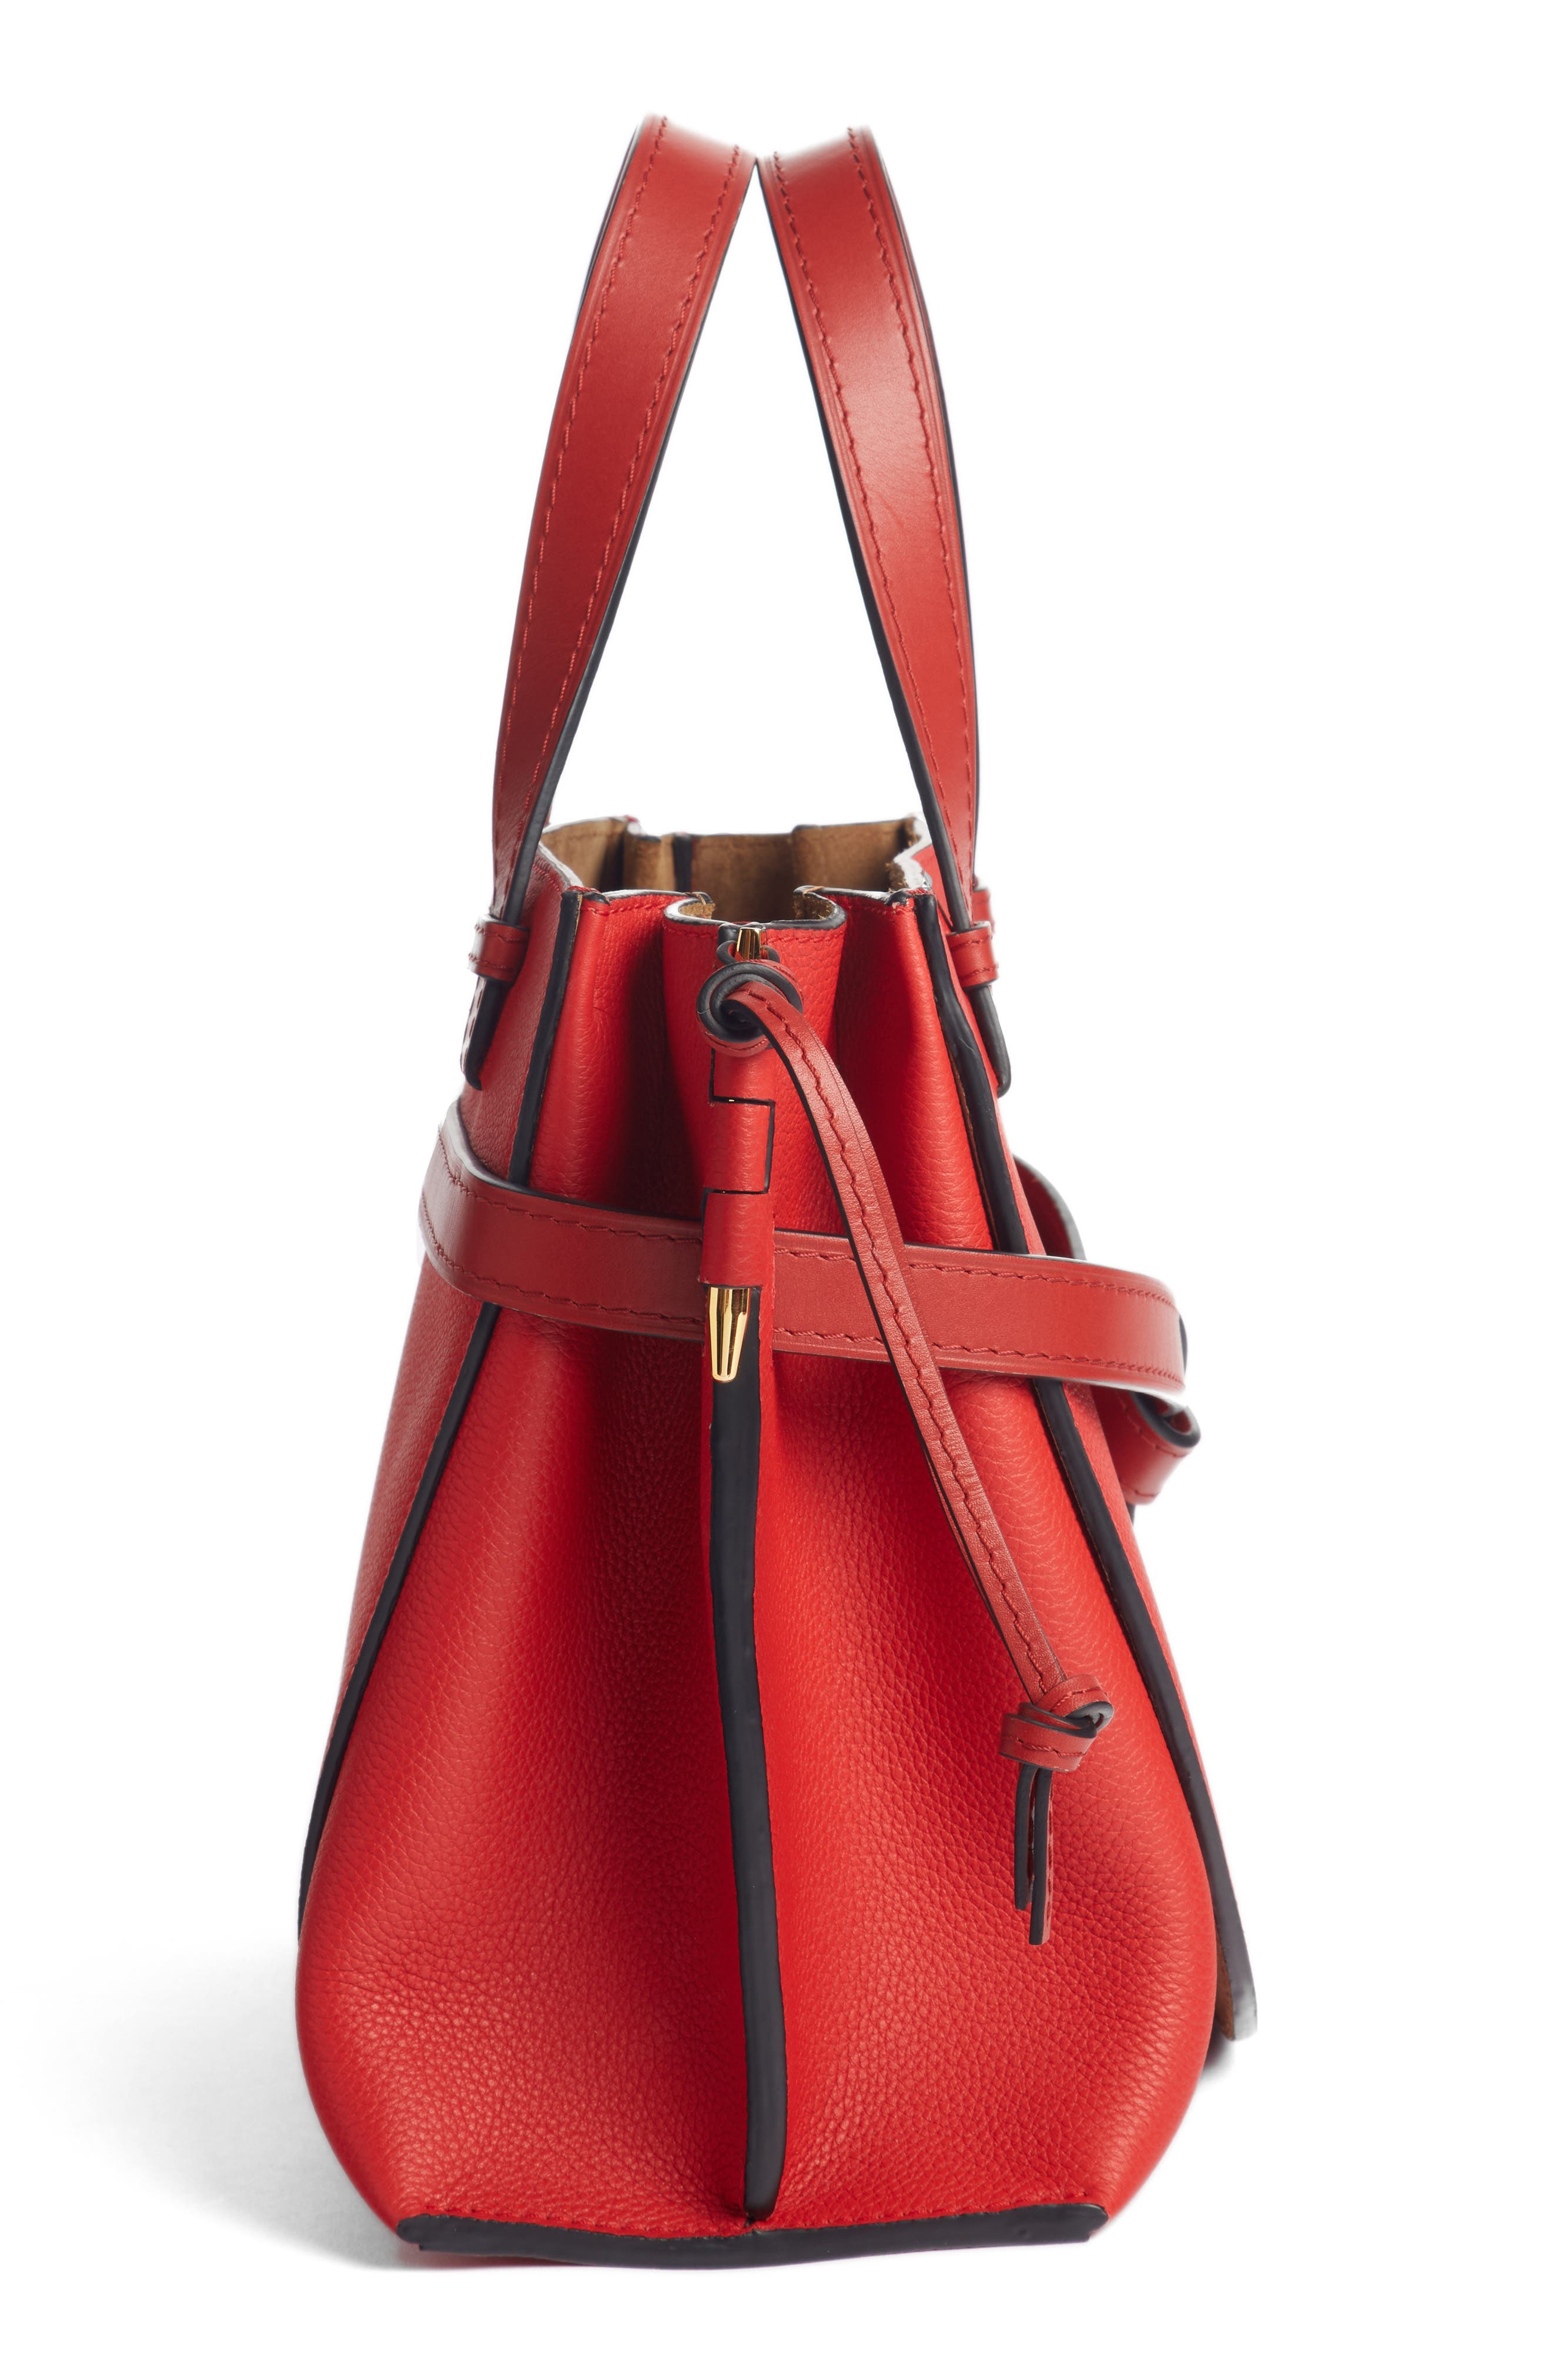 Gate Calfskin Leather Tote,                             Alternate thumbnail 4, color,                             SCARLET RED/ BURNT RED